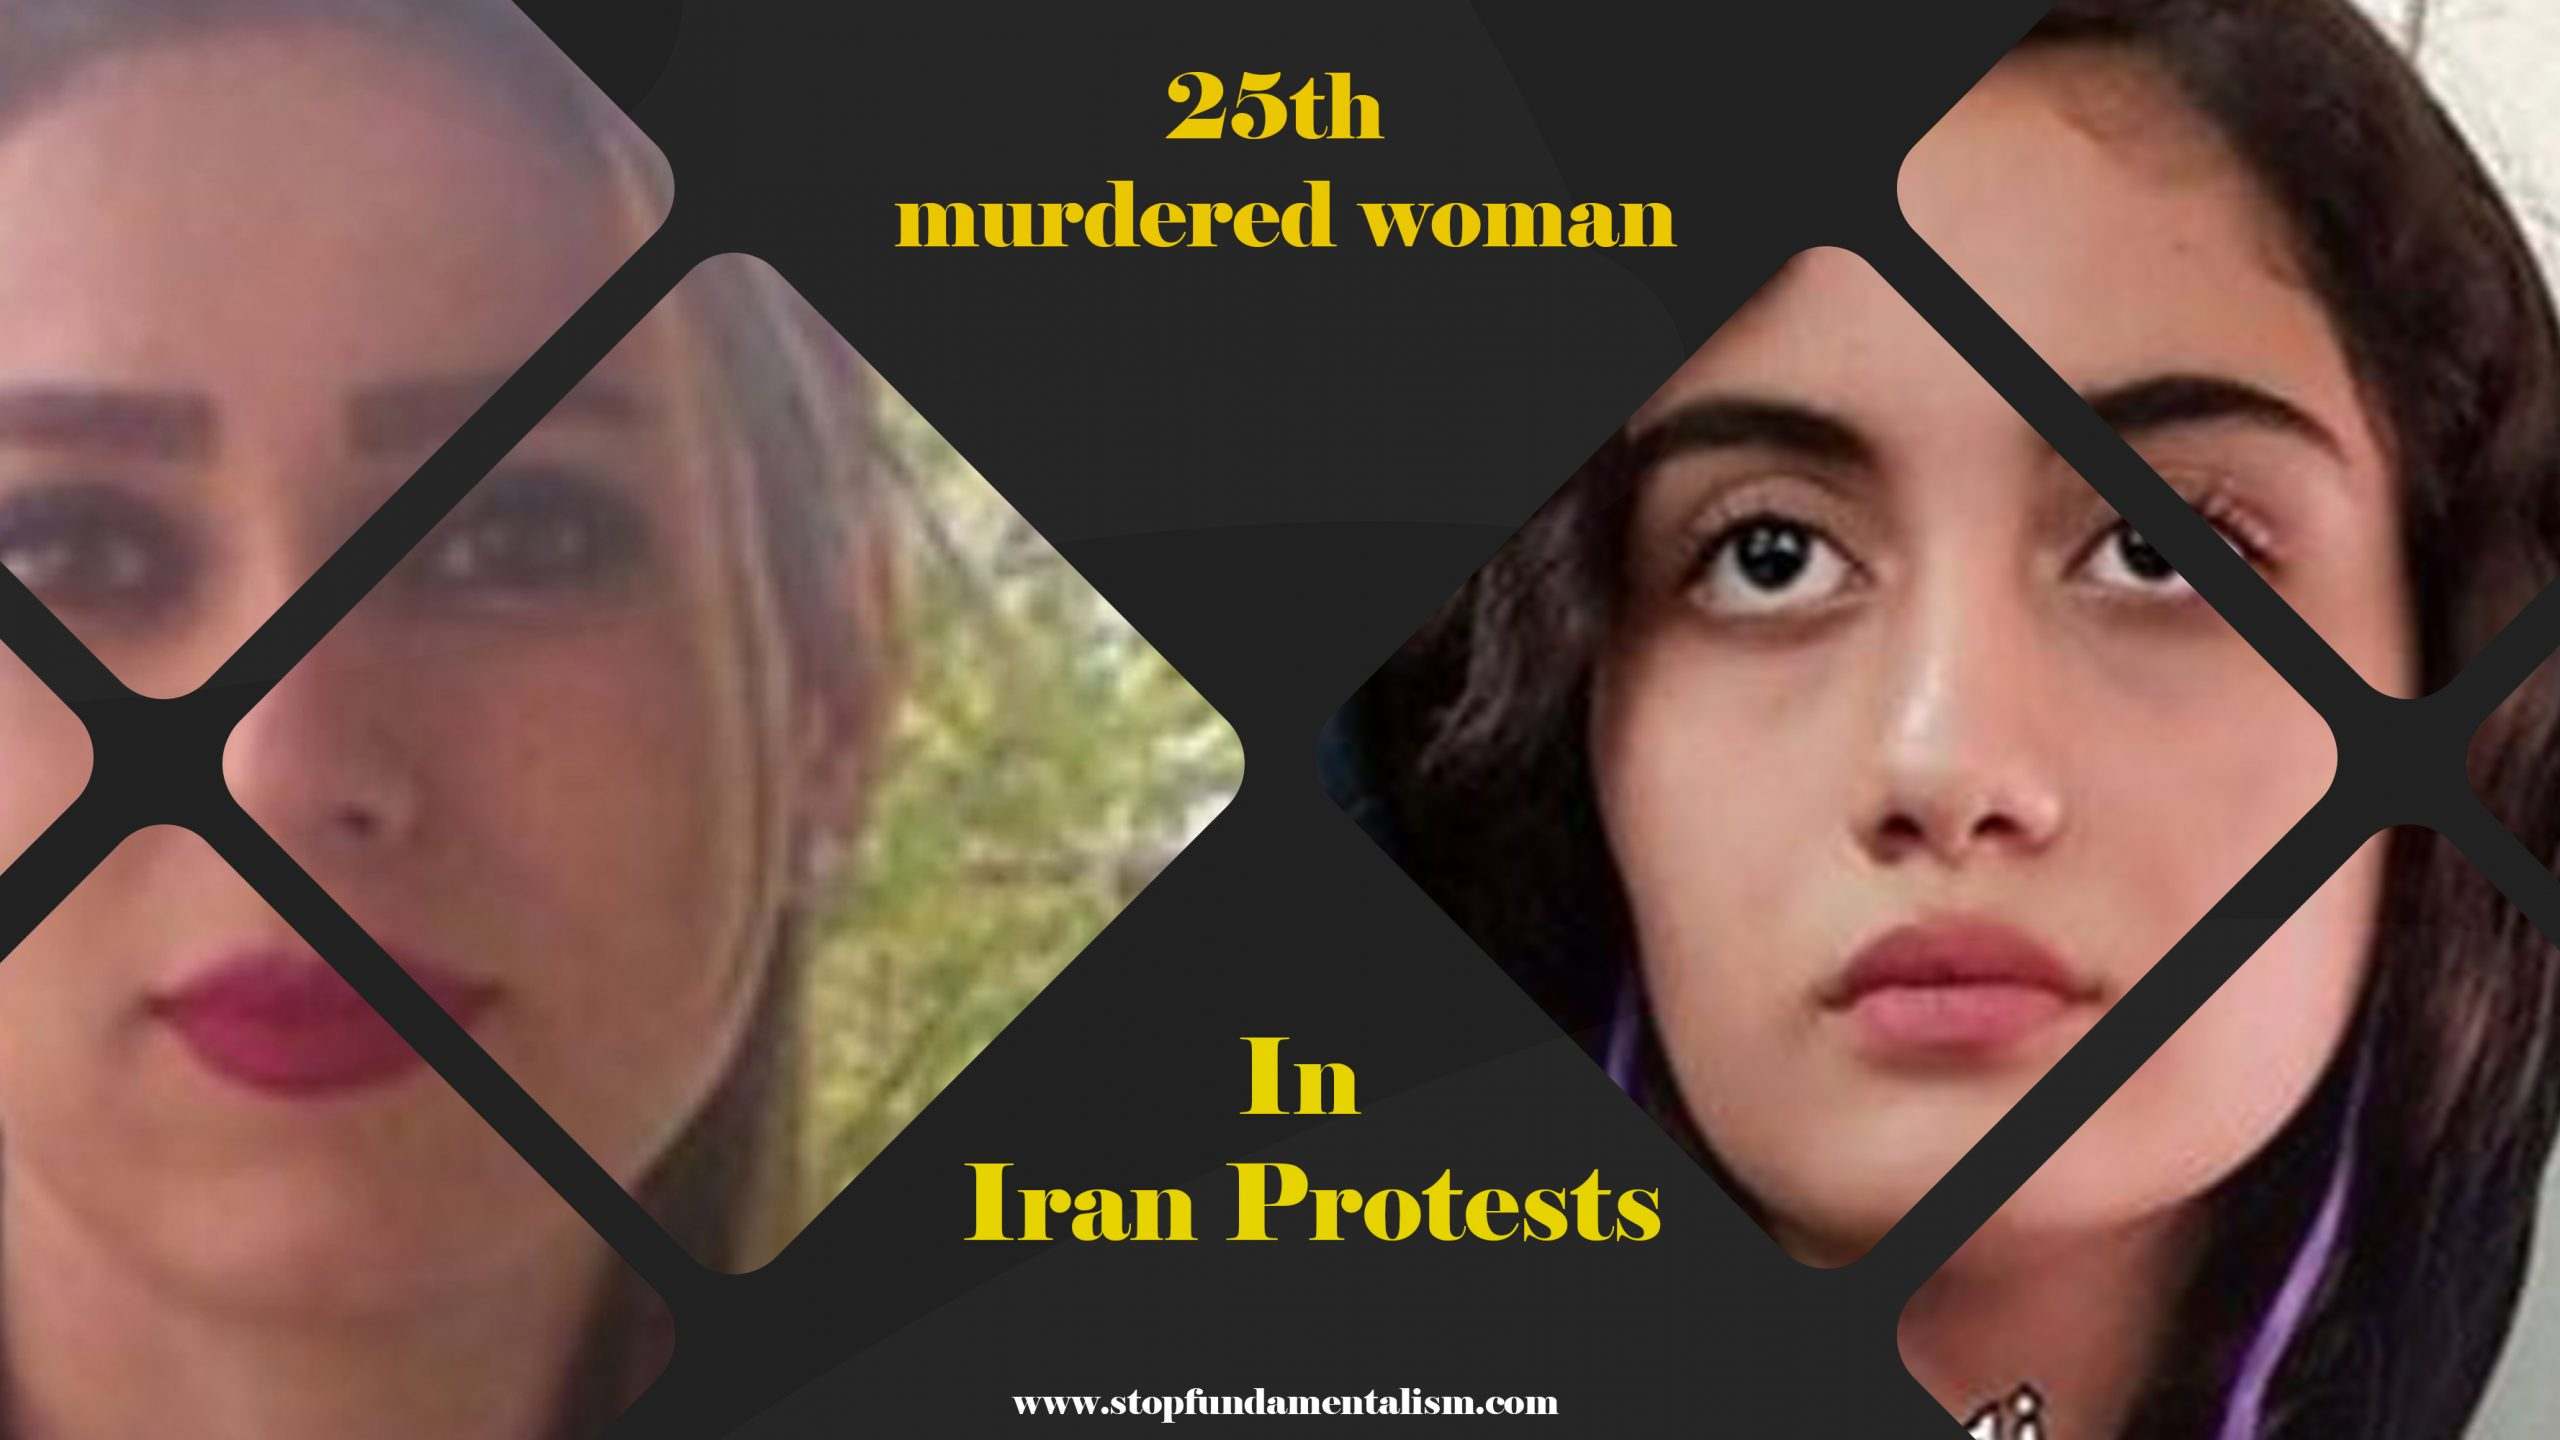 Massoumeh Darabpour, who was killed in Ahvaz, was named on the People's Mojahedin (PMOI/MEK) new list of 30 more martyrs of the uprising, bringing the total to 380 identified out of over 1000 victims.